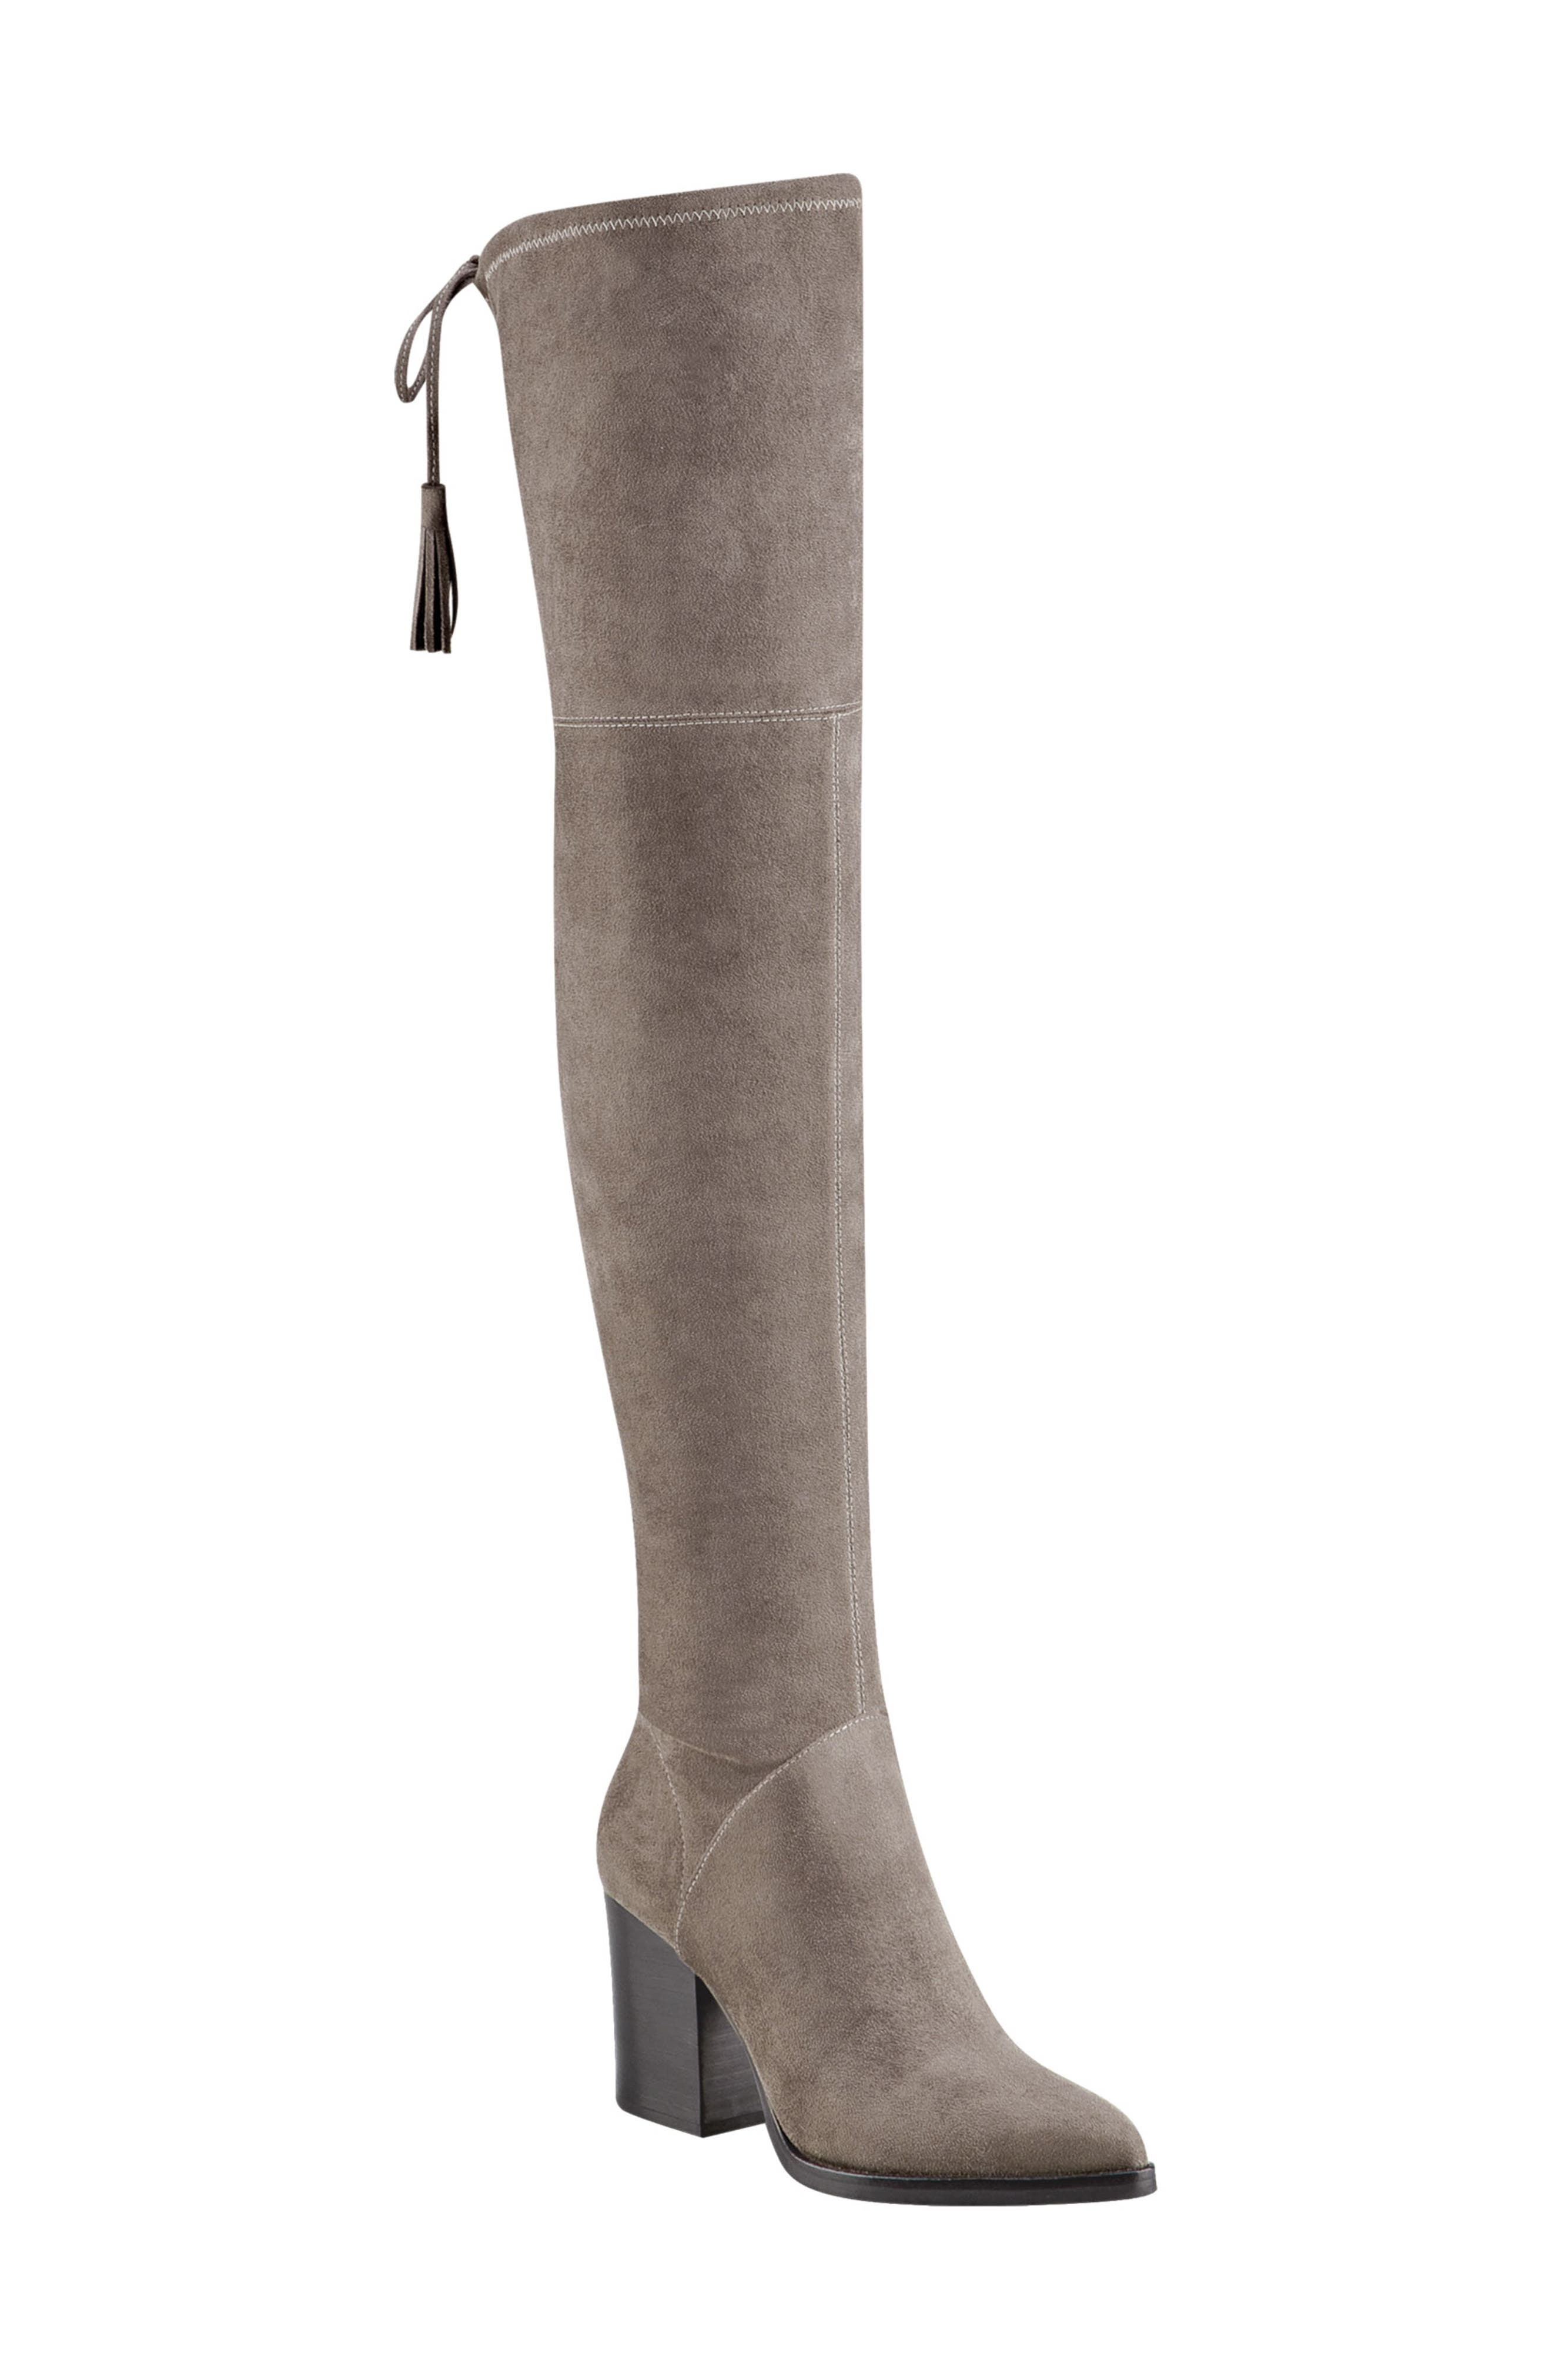 50a18d8d856e Over-the-Knee Boots for Women